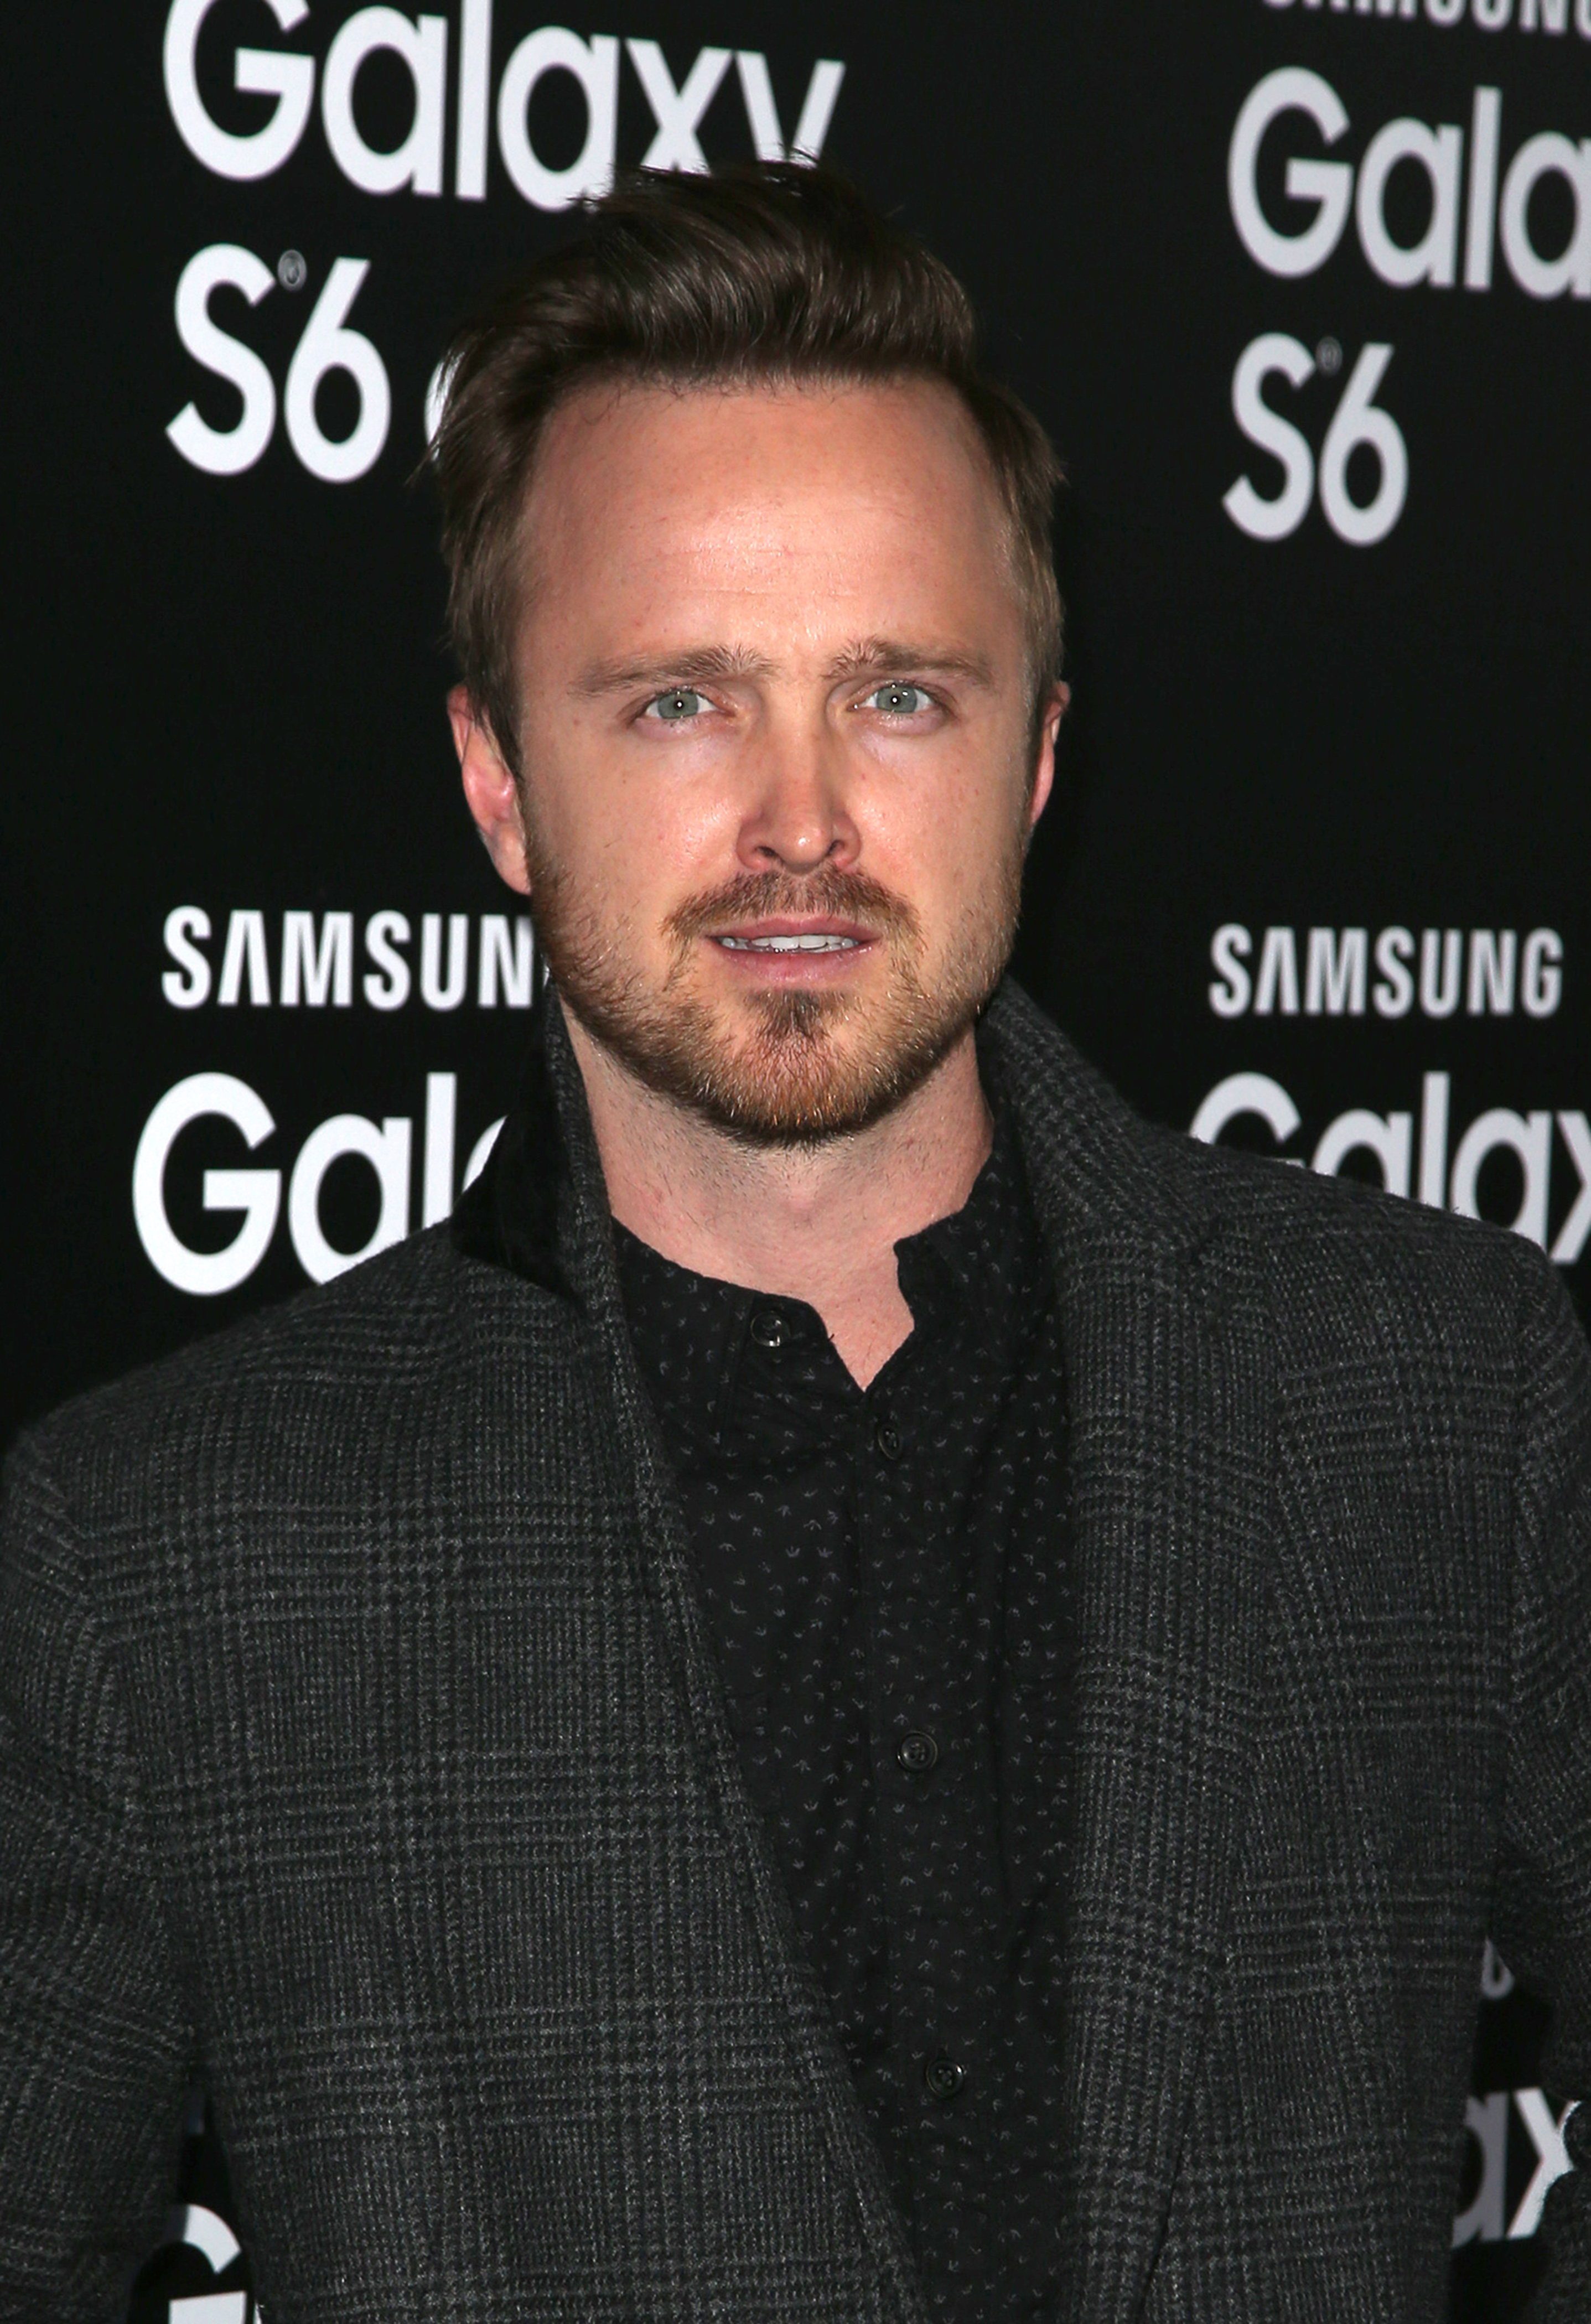 Aaron Paul attends the launch of the Samsung Galaxy S6 and Galaxy S6 Edge at Quixote Studios in Los Angeles on April 2, 2015. (FayesVision/WENN)